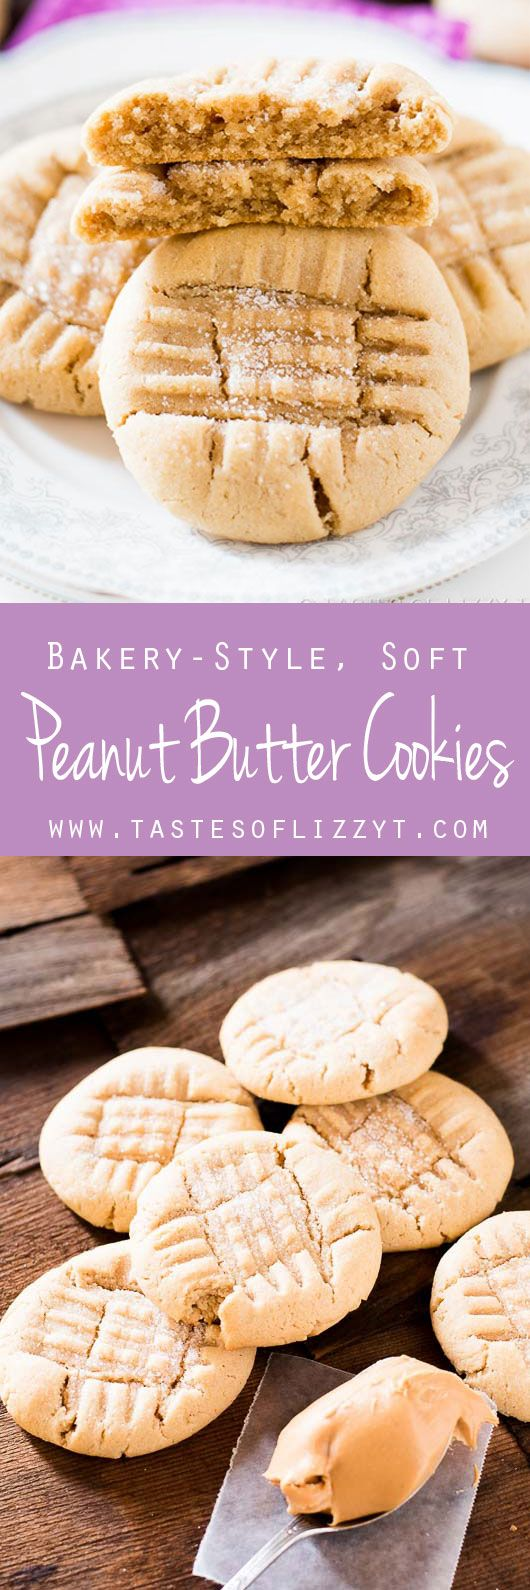 Bakery Style Soft Peanut Butter Cookies This is THE BEST peanut butter cookie recipe. They stay soft for days!!